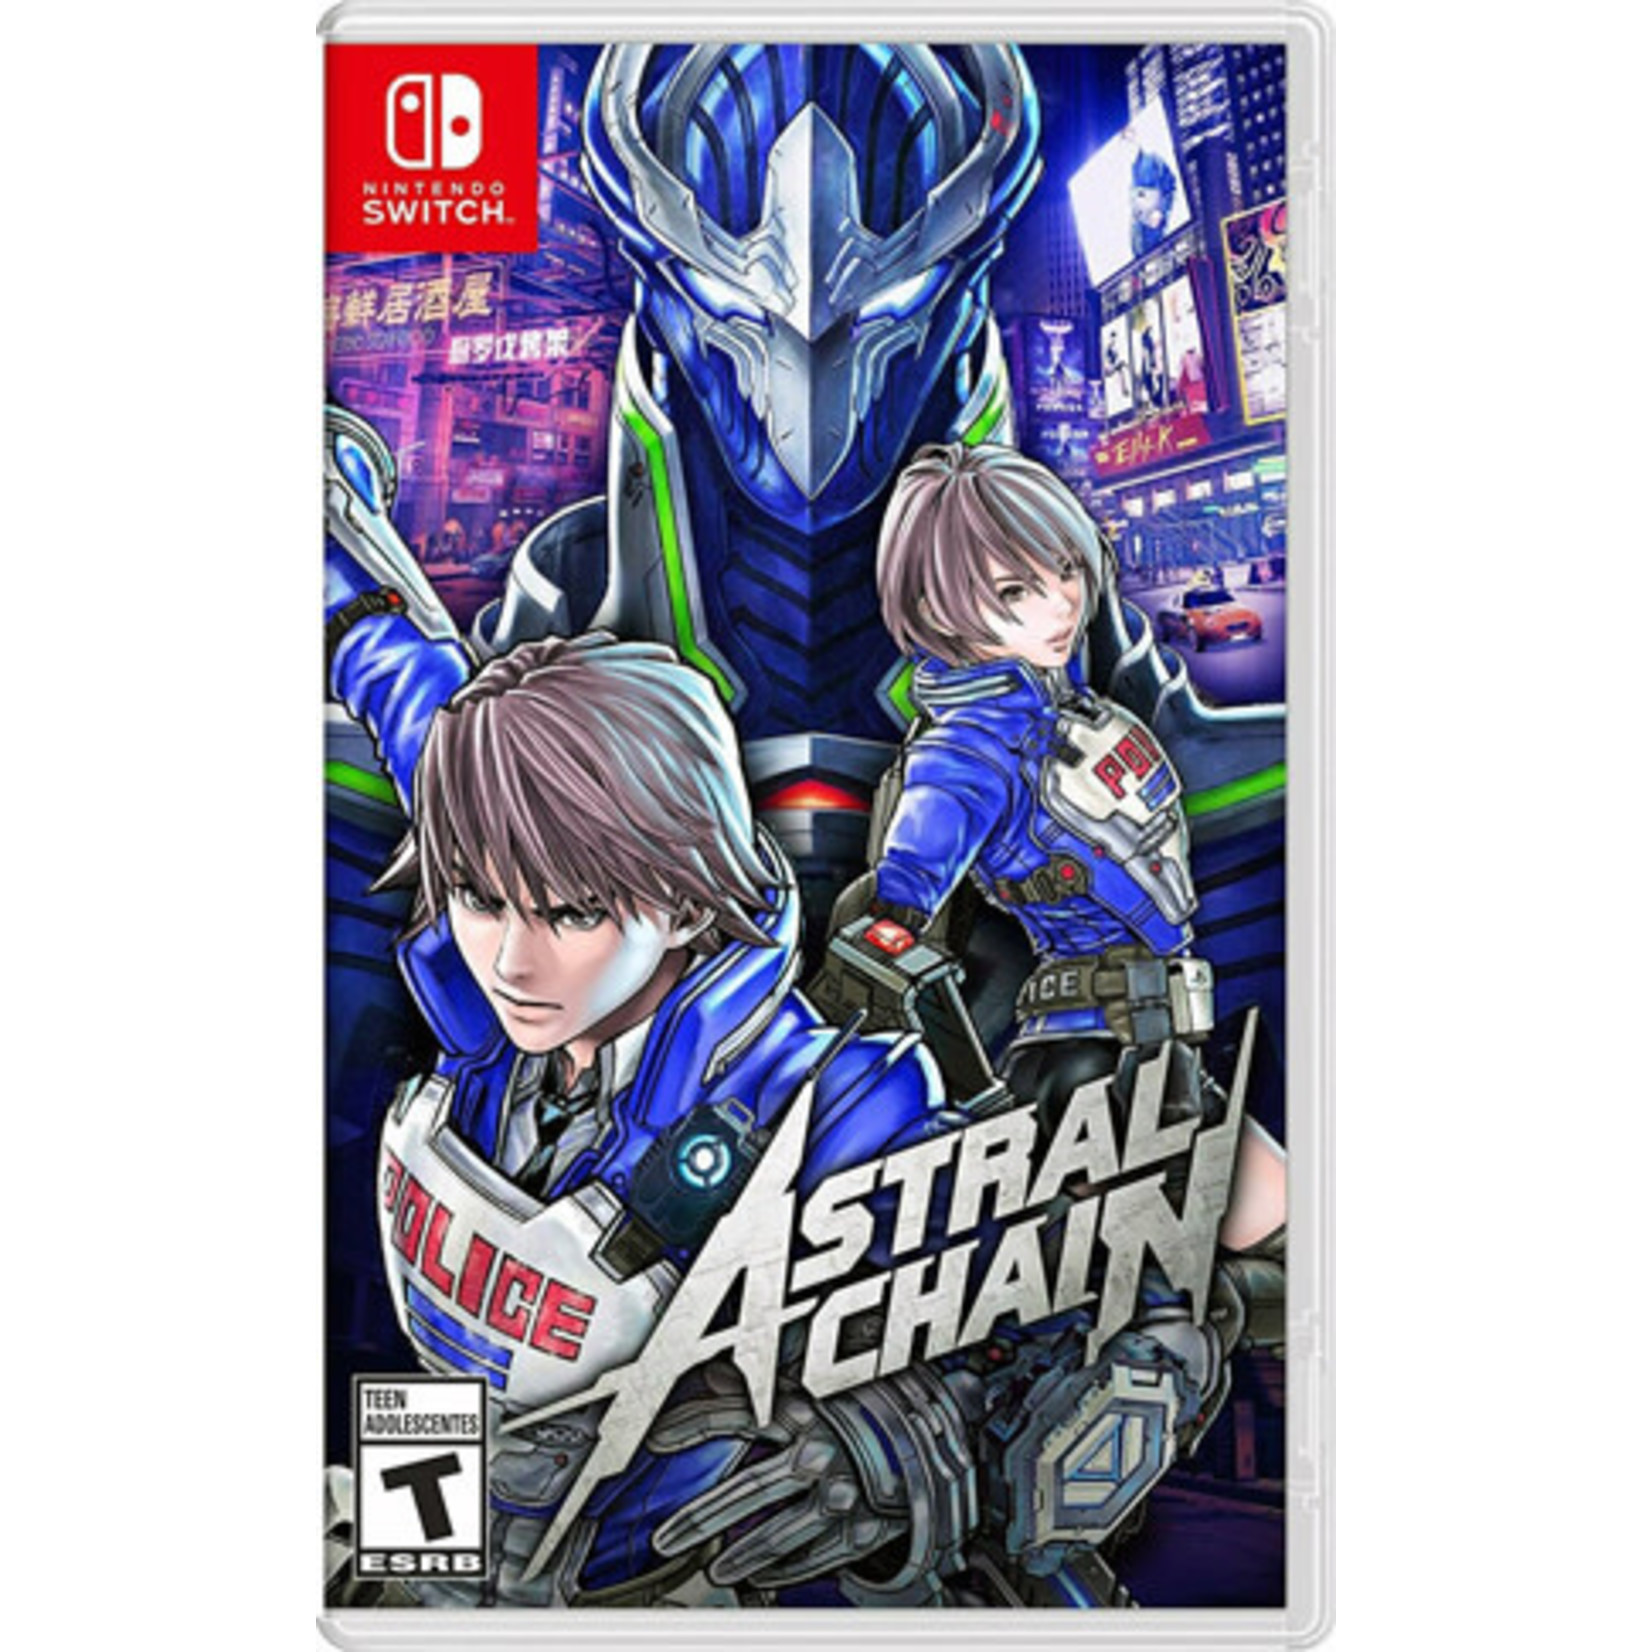 SWITCH-ASTRAL CHAIN